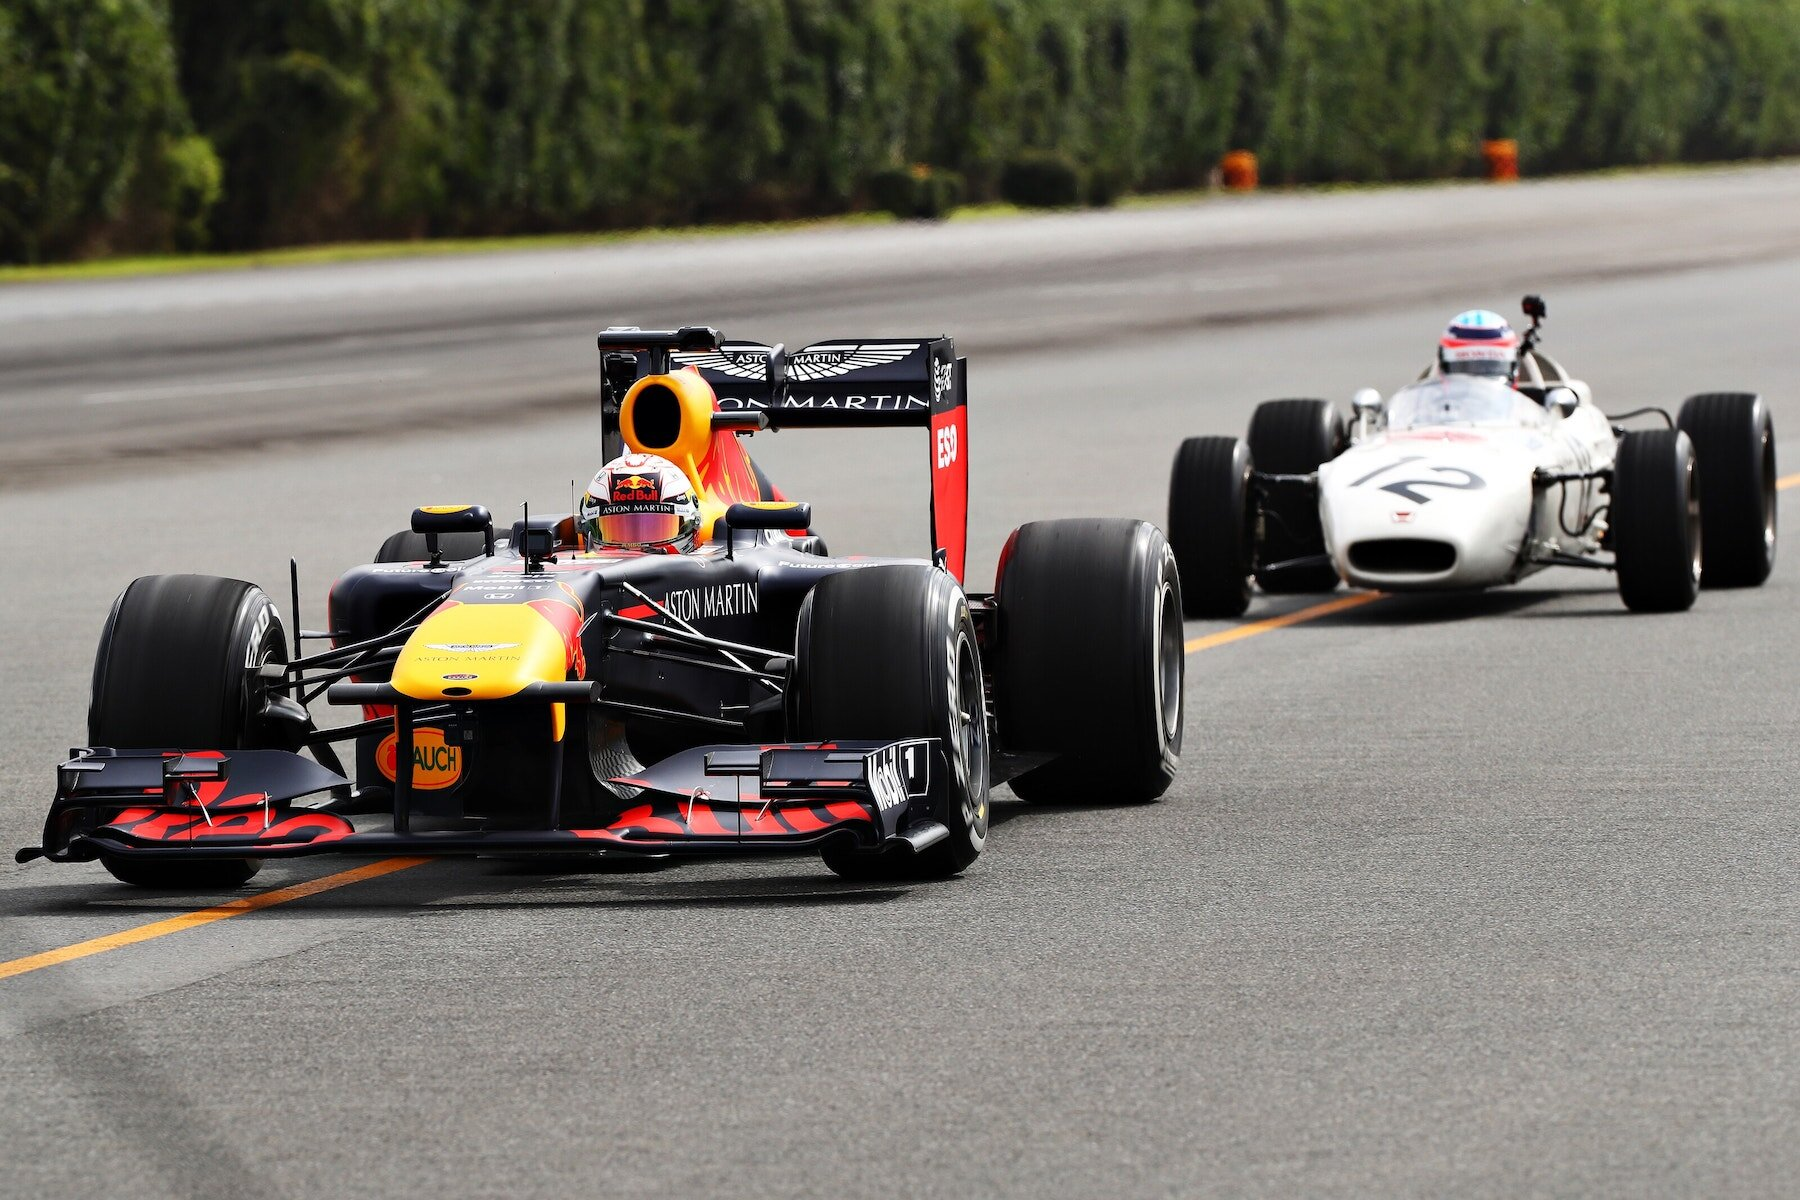 2019 Old and New RA272 and RB7 at Japan 15.jpg